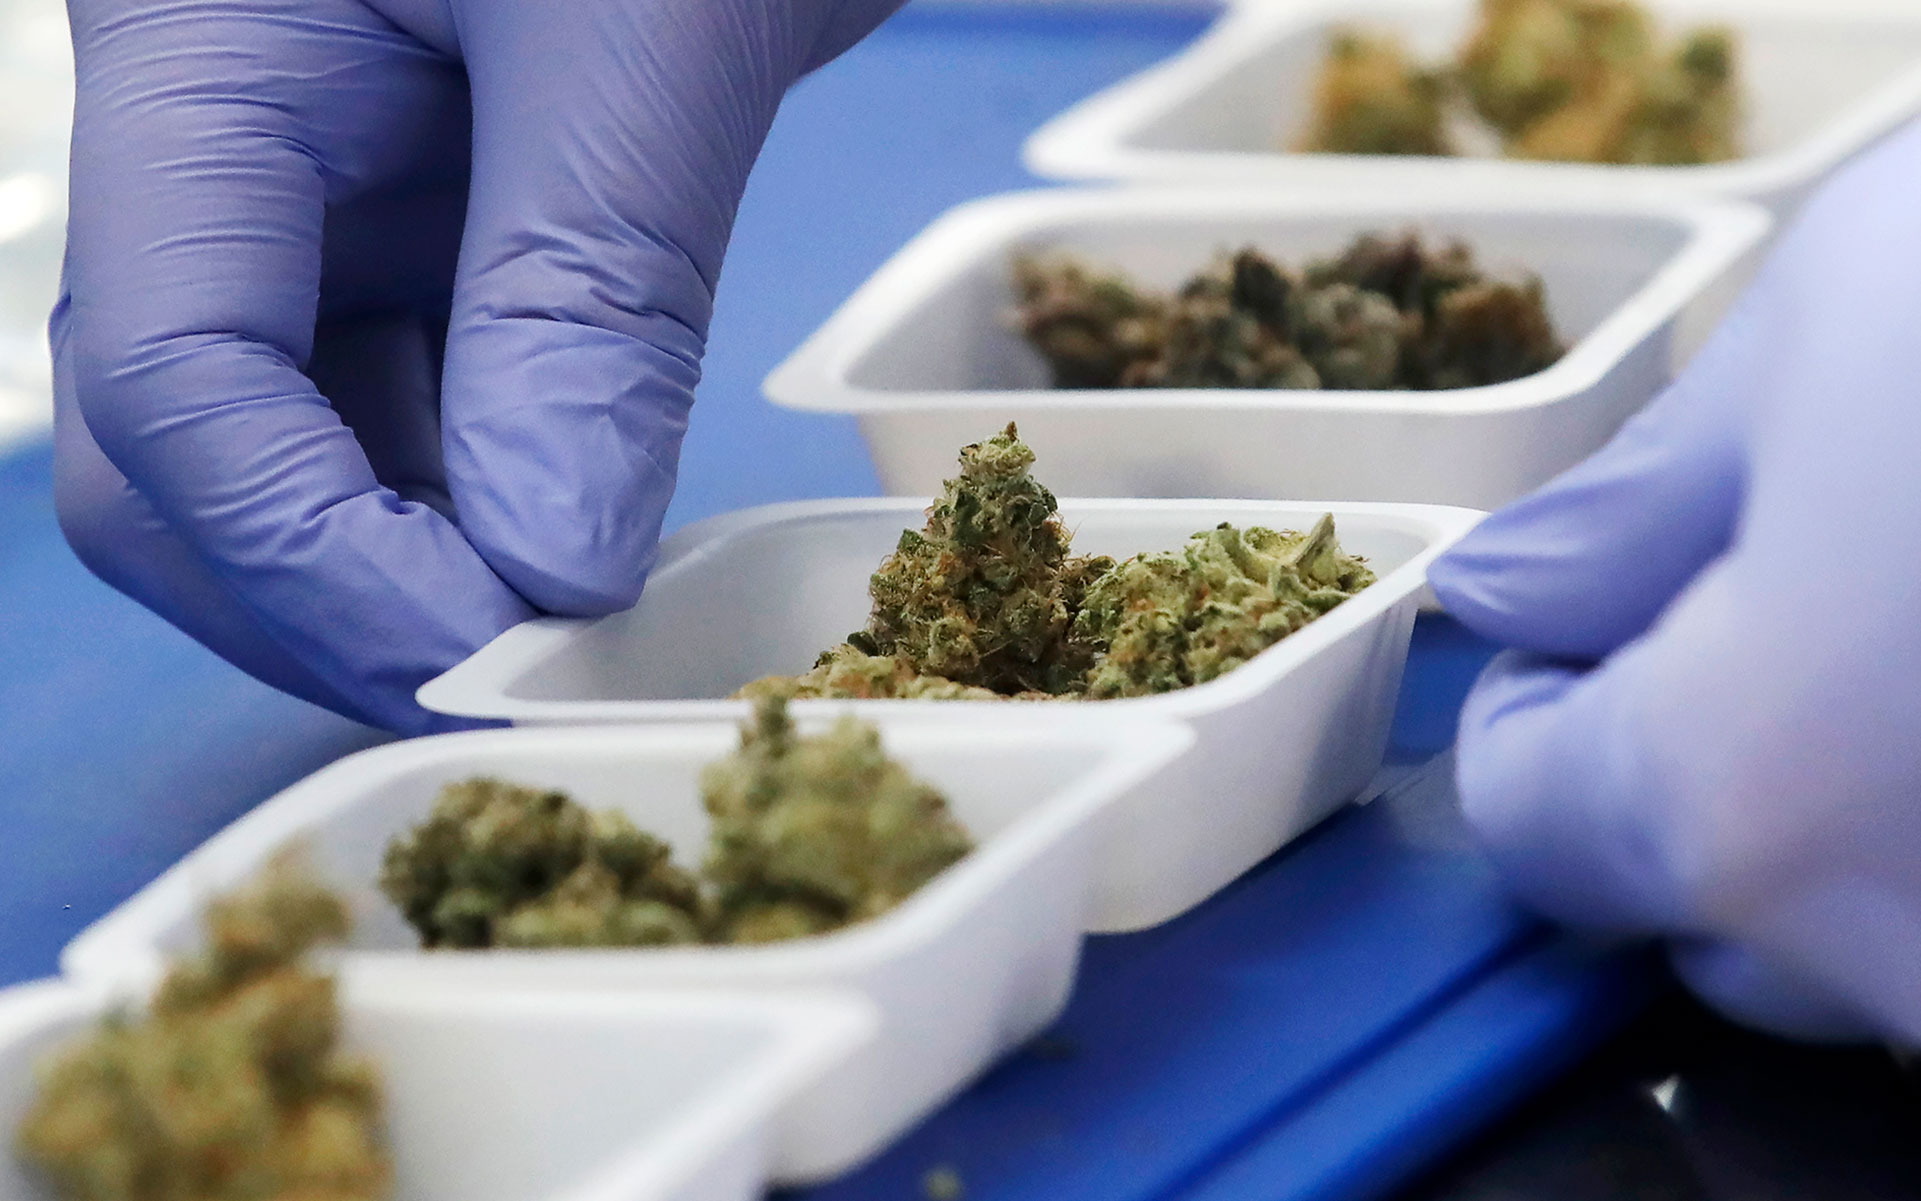 What Are You Smoking? Demystifying Cannabis Regulation and Testing